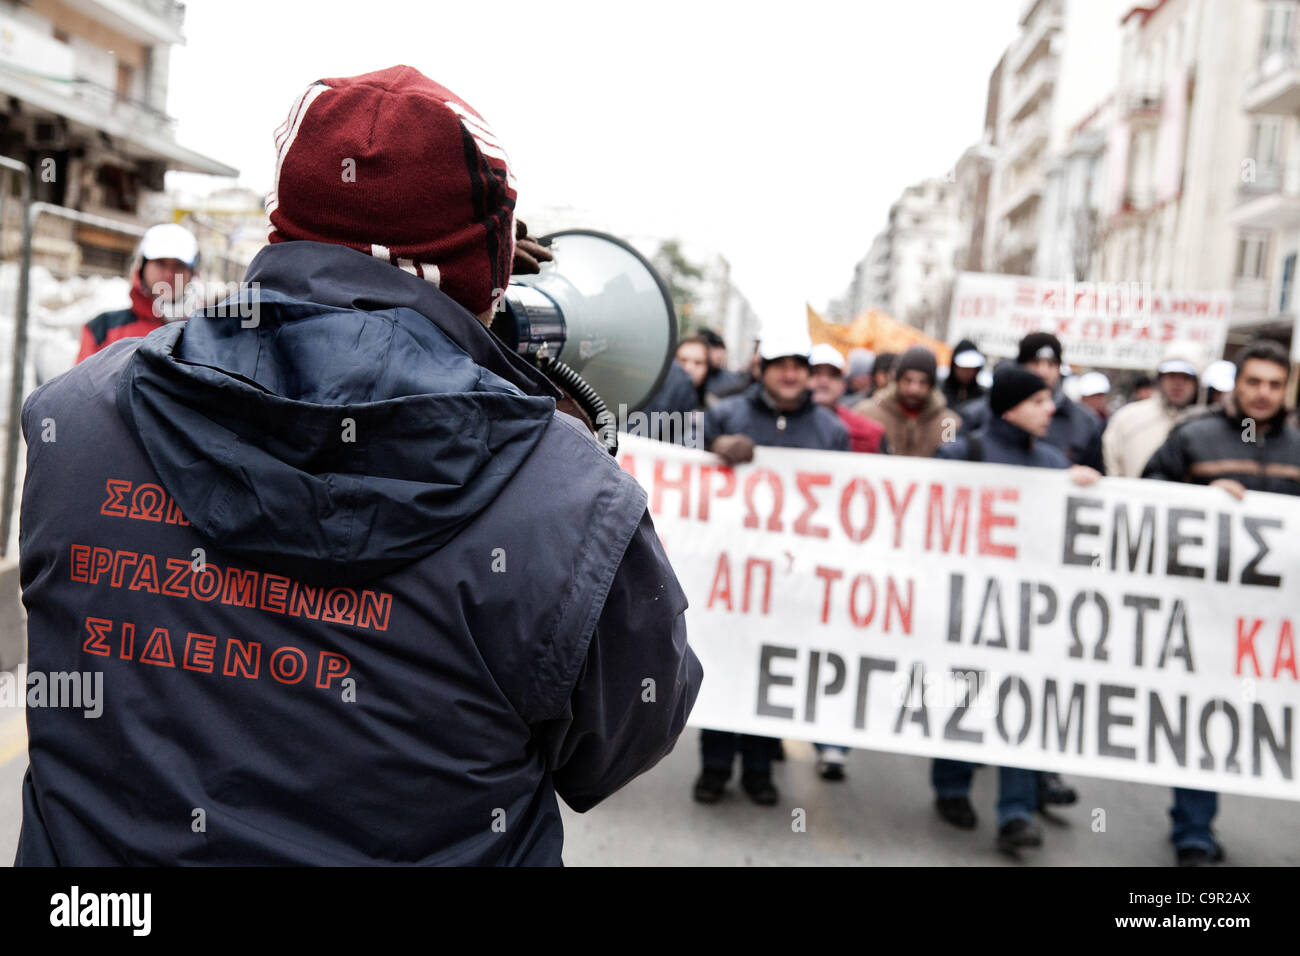 Greek protesters, employees of the steel production company Sidenor, carry a banner against the new austerity measures. - Stock Image